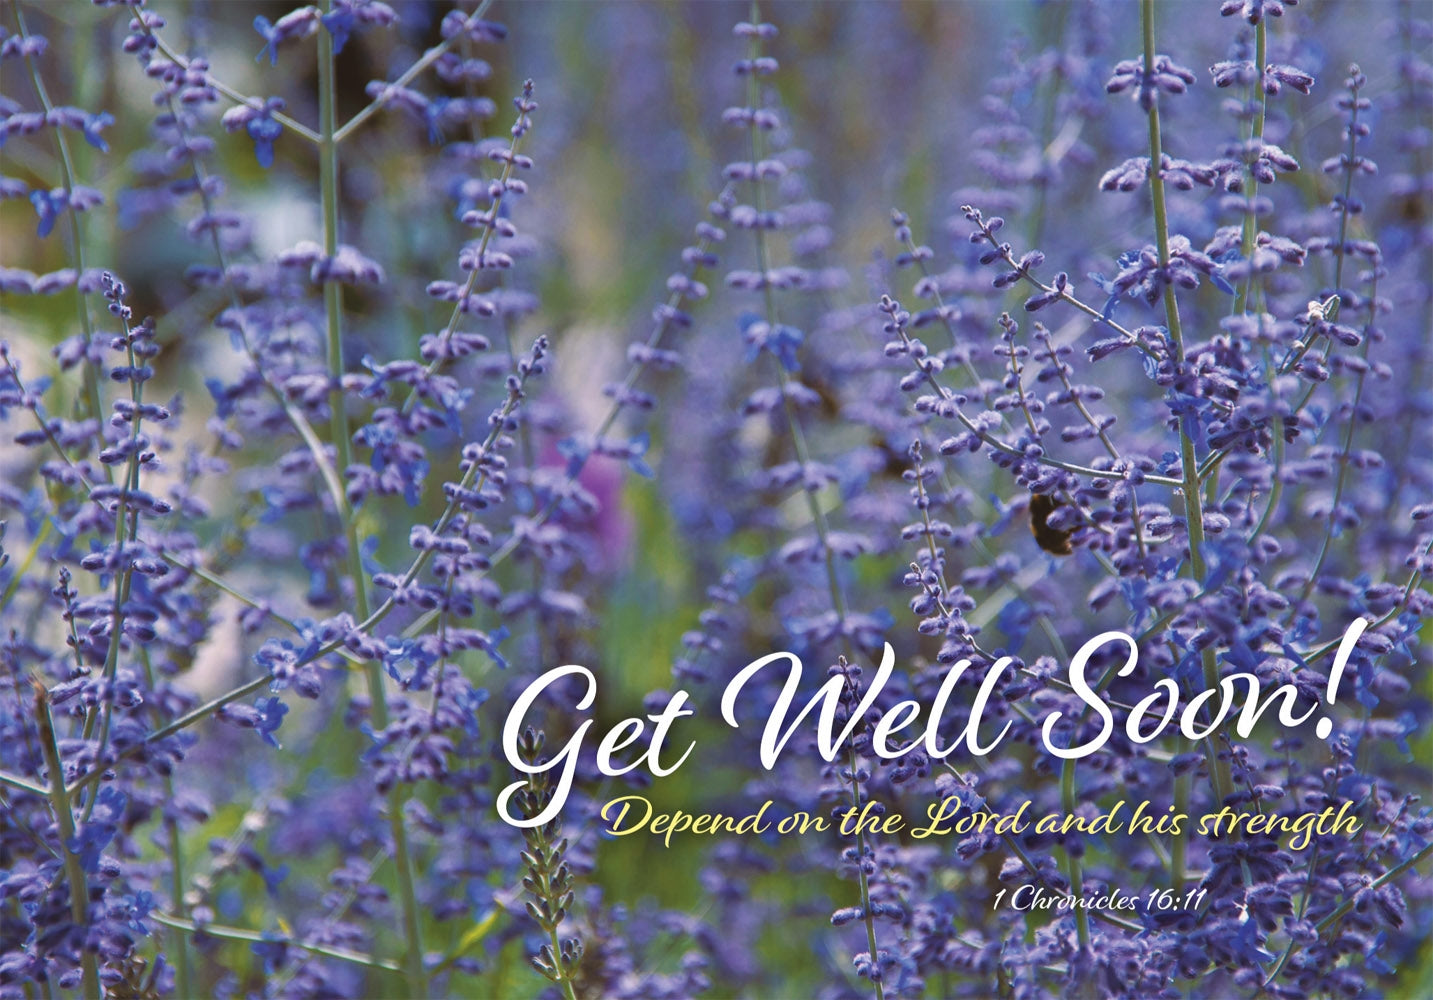 Get Well Soon - Lavender Std Card Gloss (6 Pack)Get Well Soon - Lavender Std Card Gloss (6 Pack)